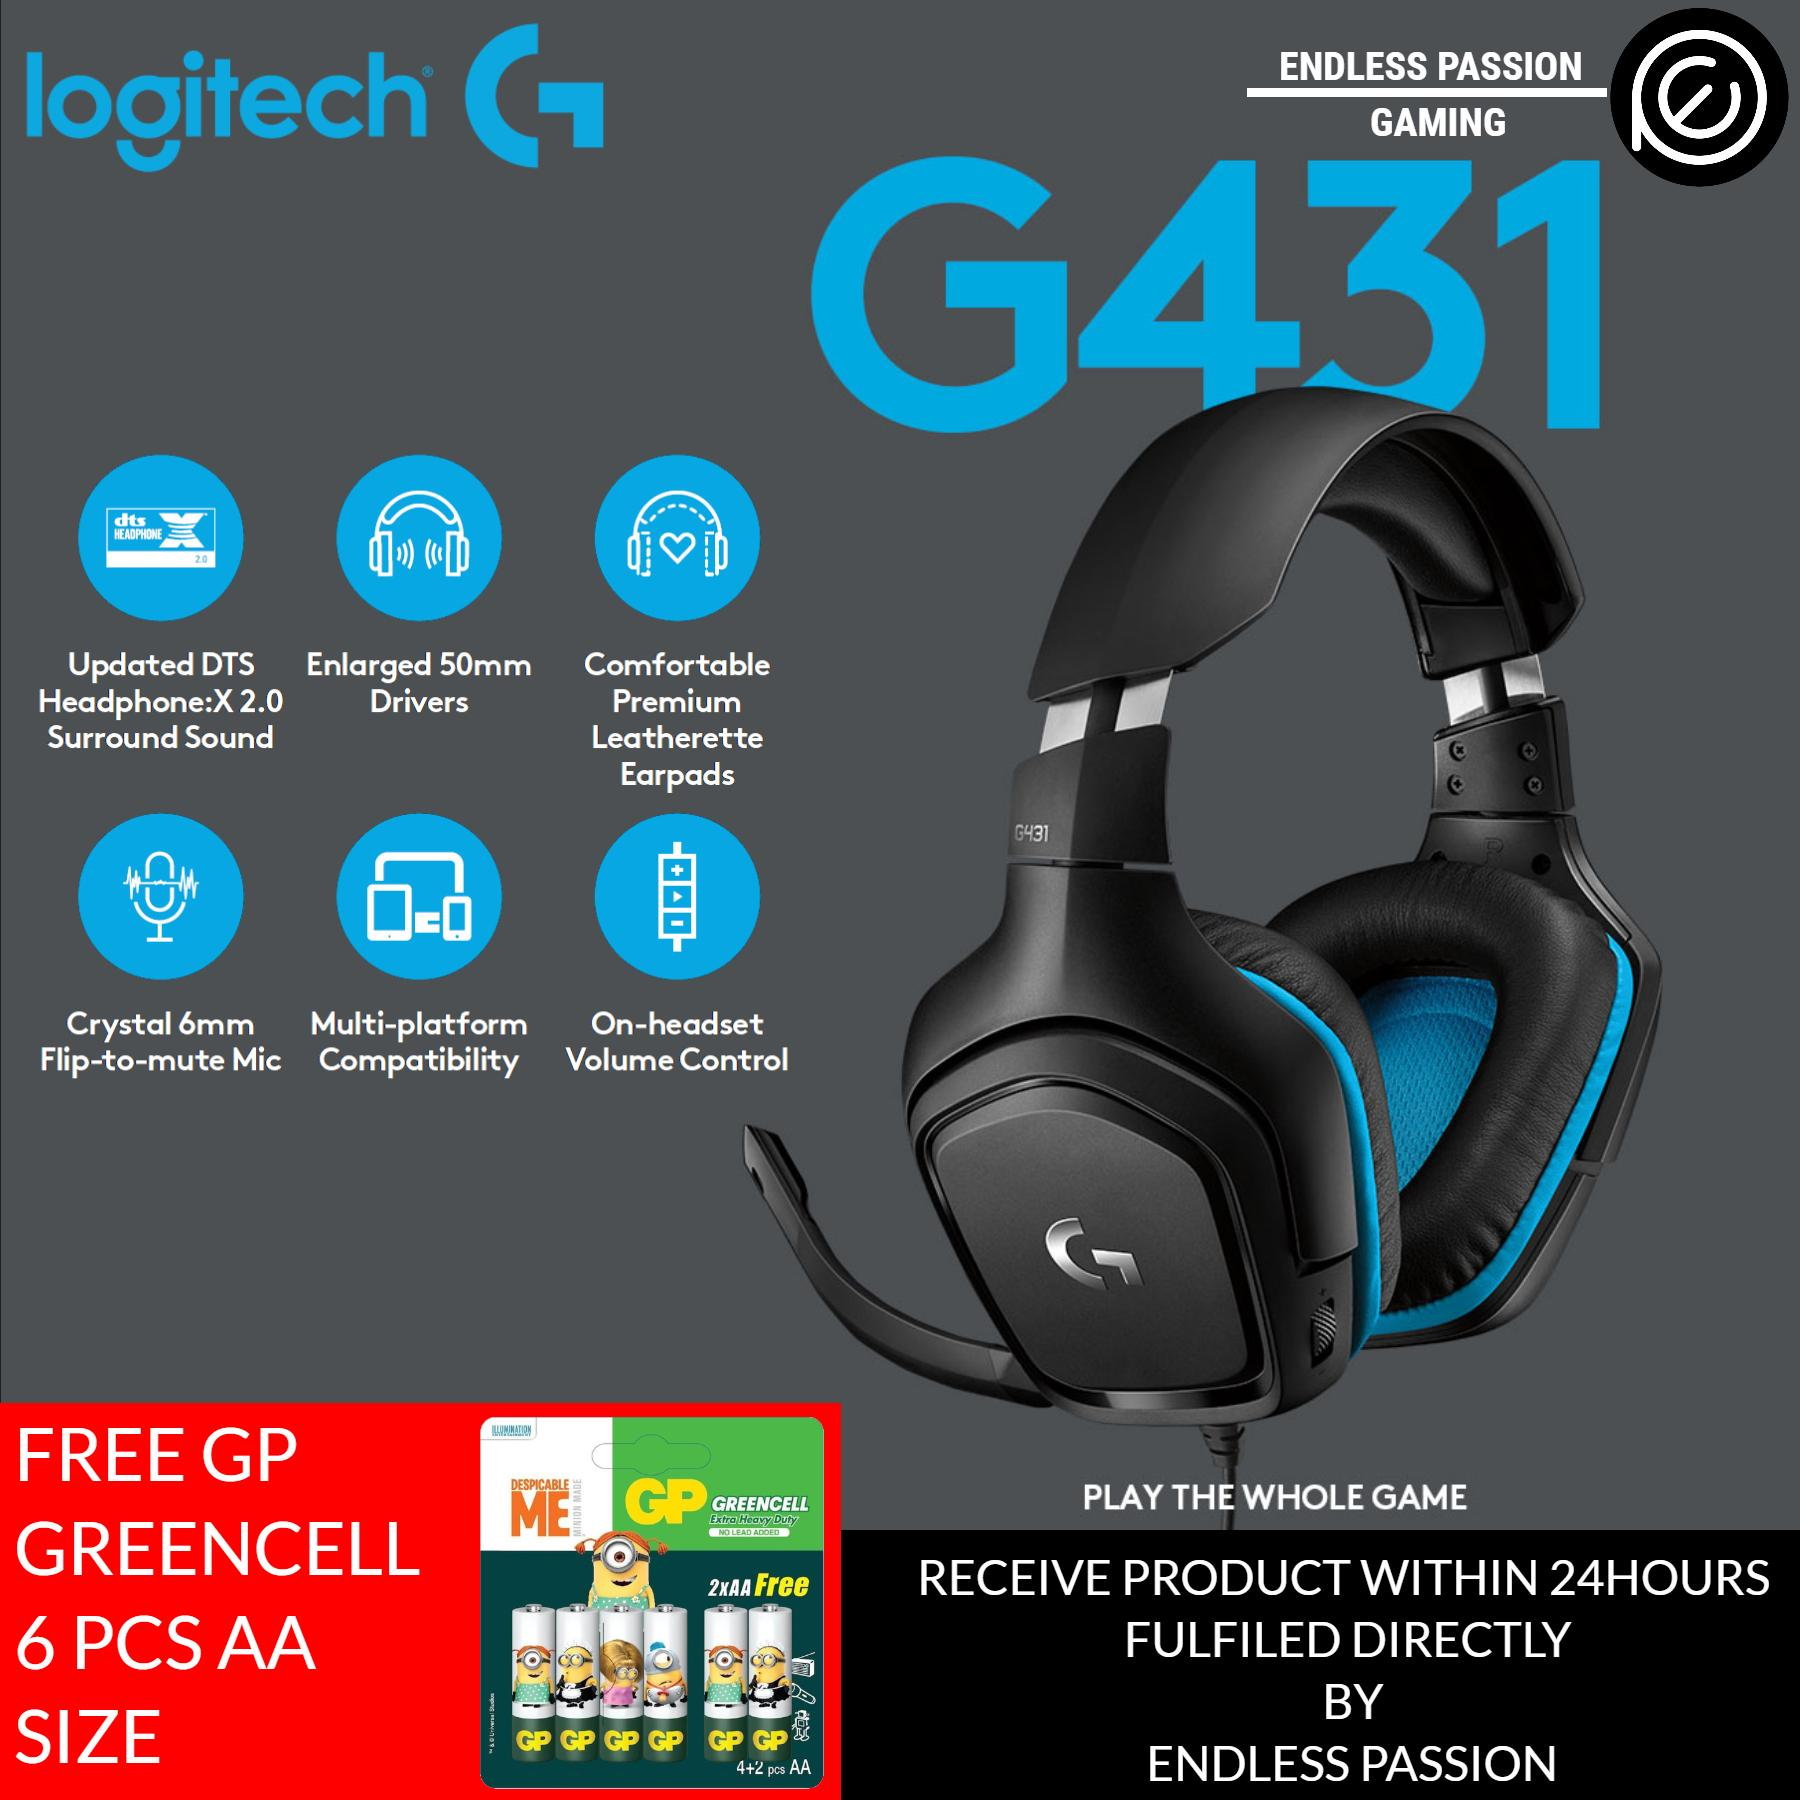 Logitech G431 7.1 Surround Sound Wired Gaming Headset (Leatherette) - PC, PS4, Xbox One, Nintendo Switch